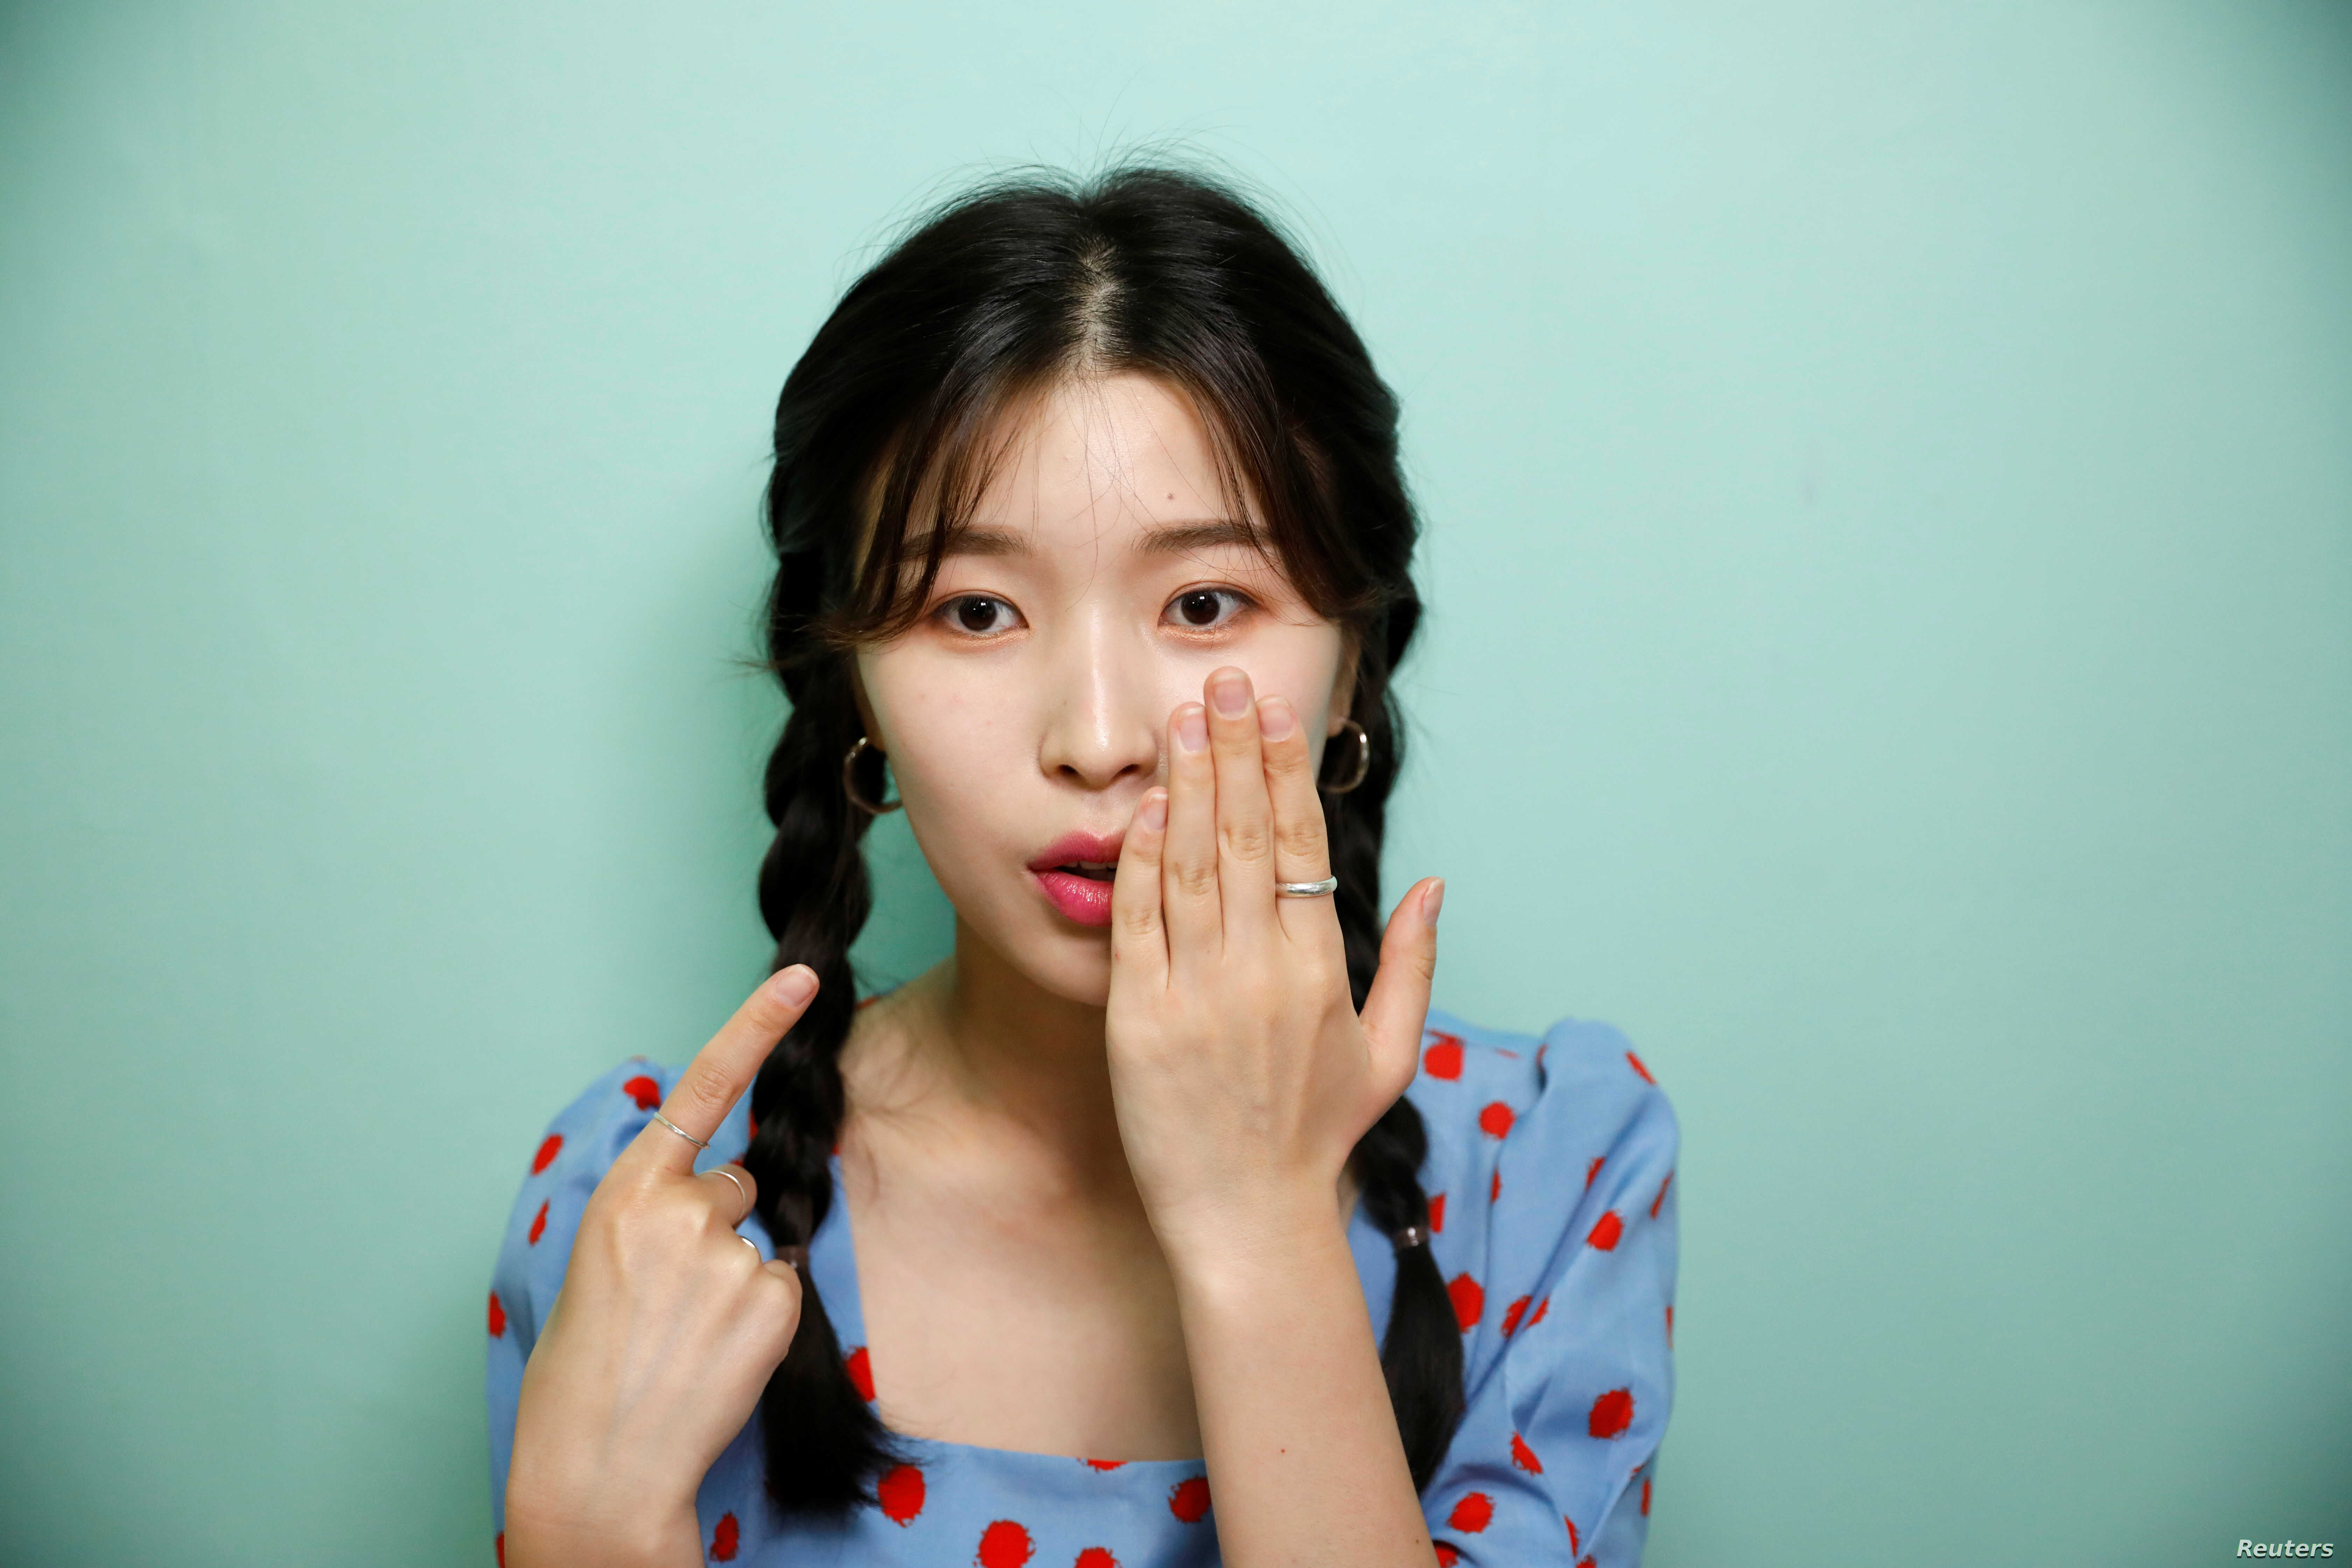 Kang Na-ra, a North Korean defector who is now a beauty YouTuber, points at her lips after putting on a lipstick made by North Korea, in Seoul, South Korea, June 11, 2019.